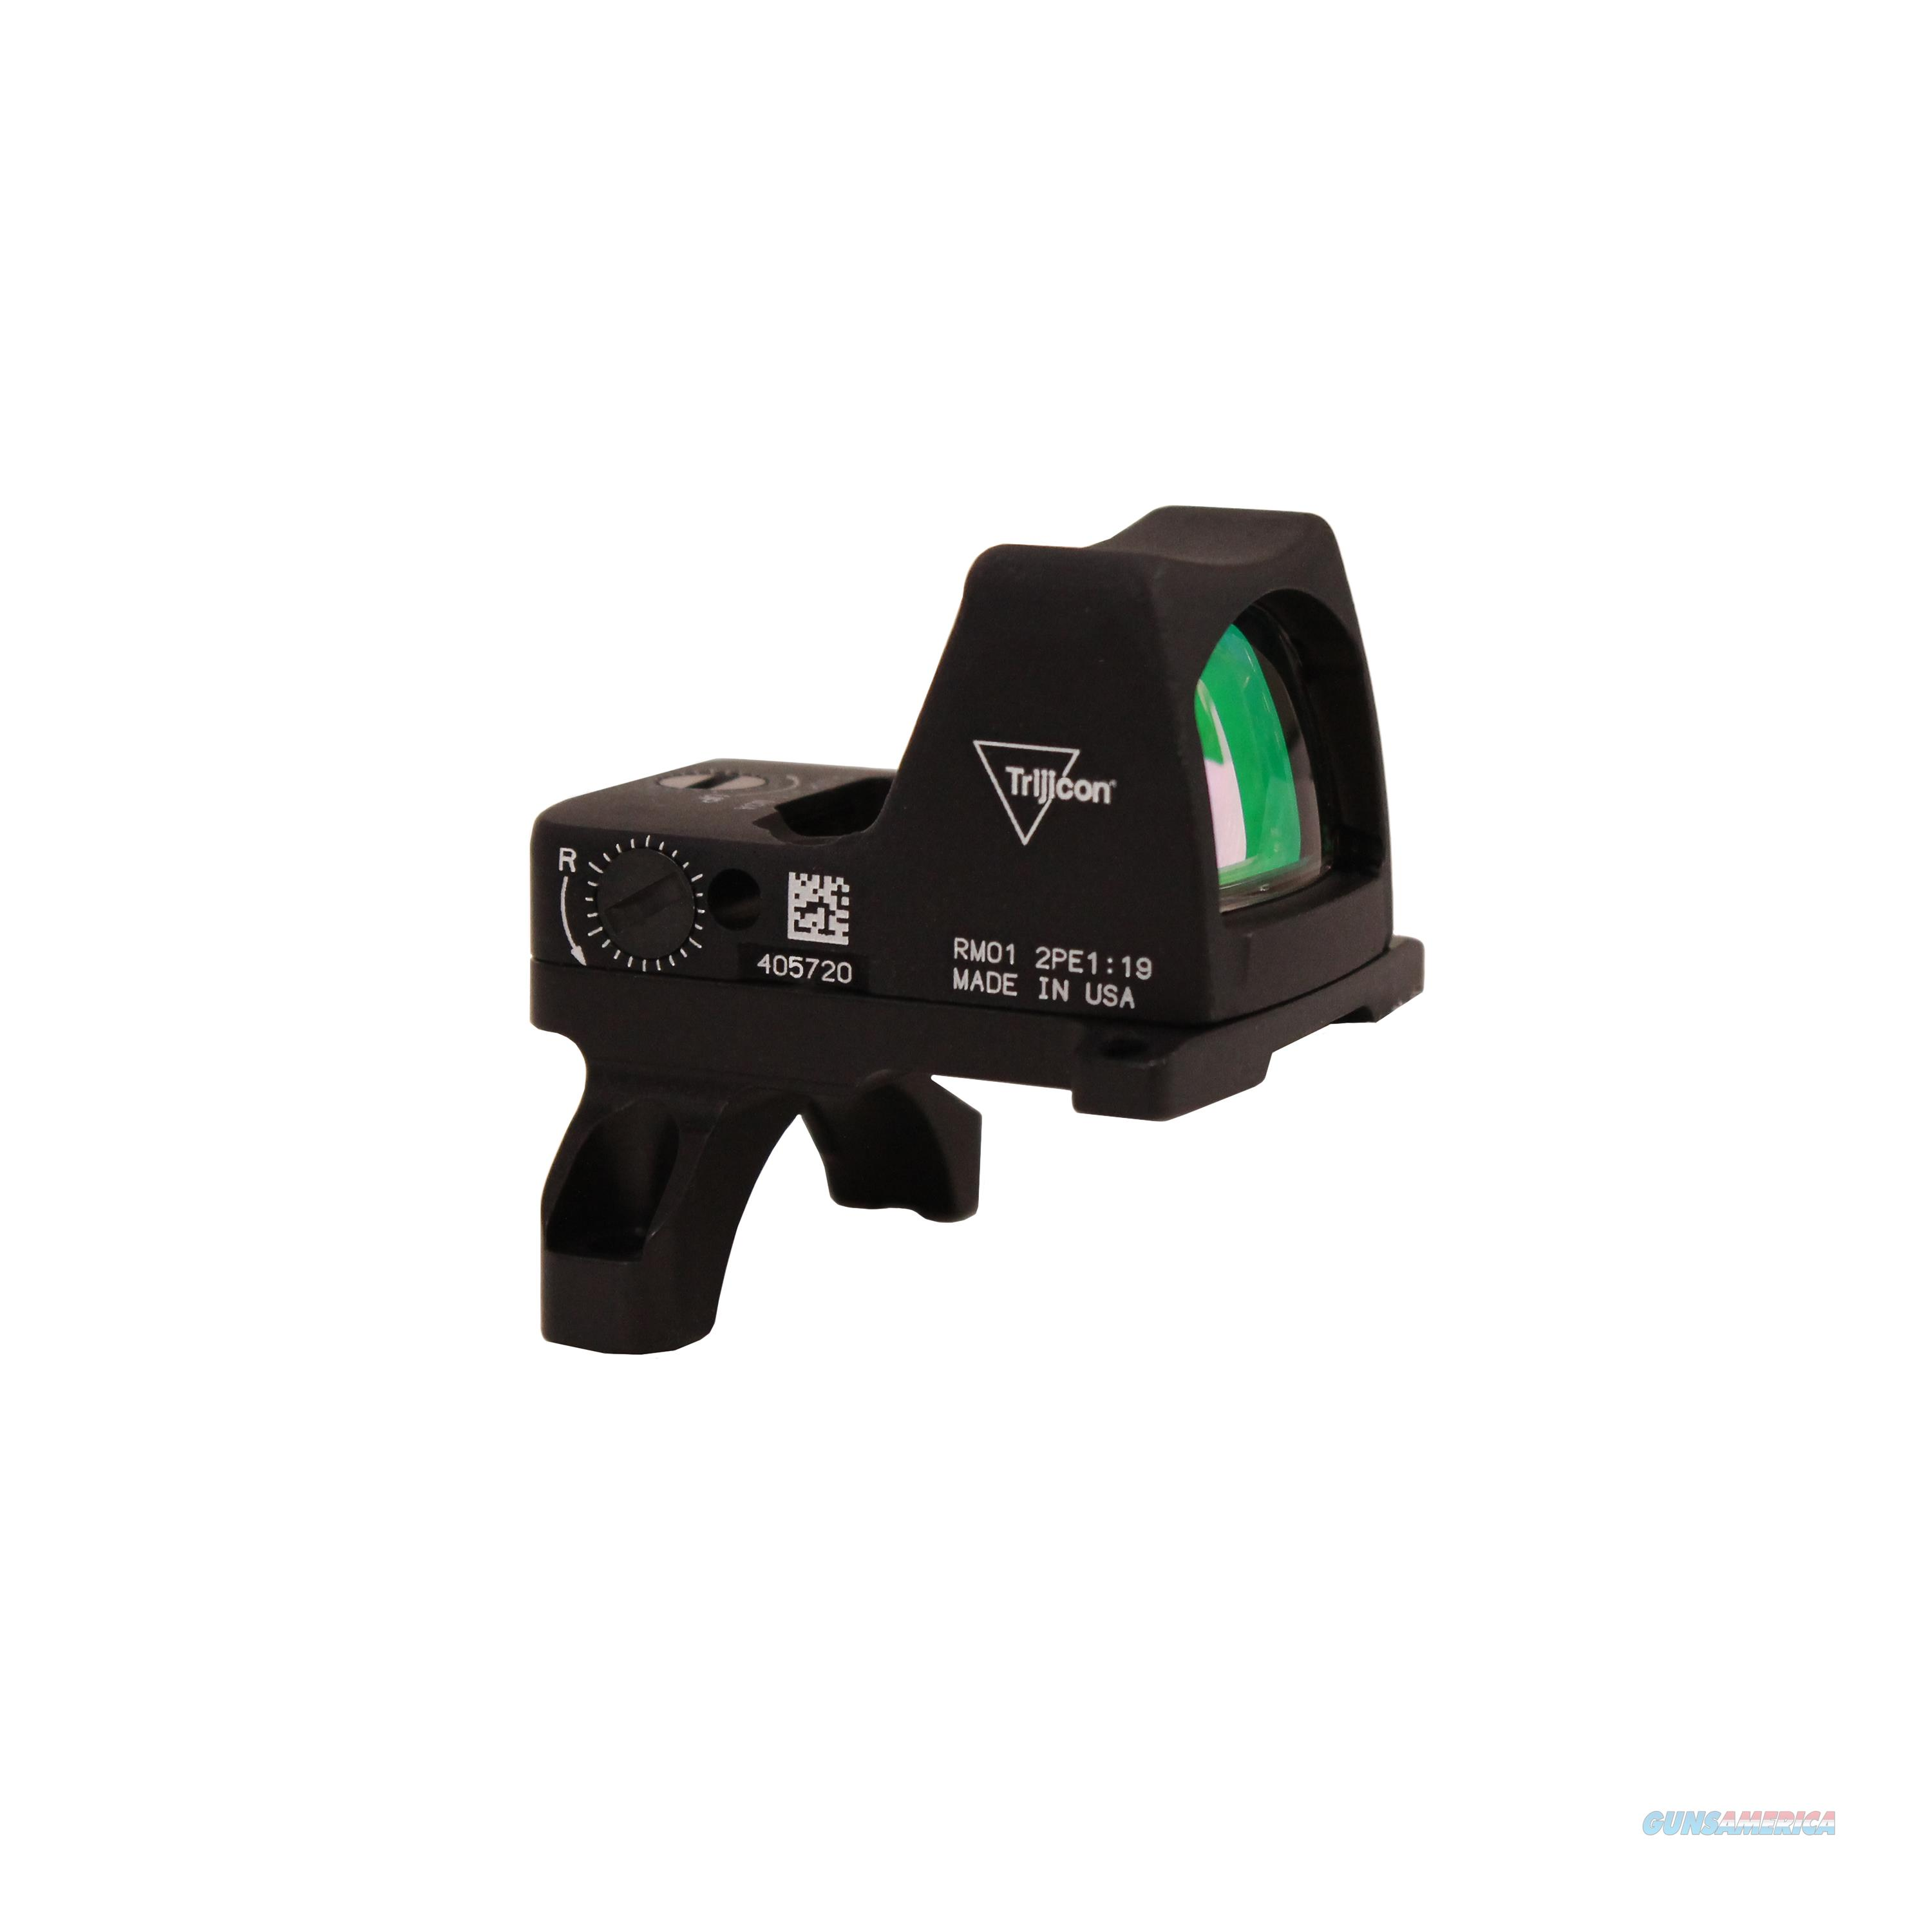 Trijicon Rmr Type 2 Led Sight RM01C700604  Non-Guns > Scopes/Mounts/Rings & Optics > Mounts > Other